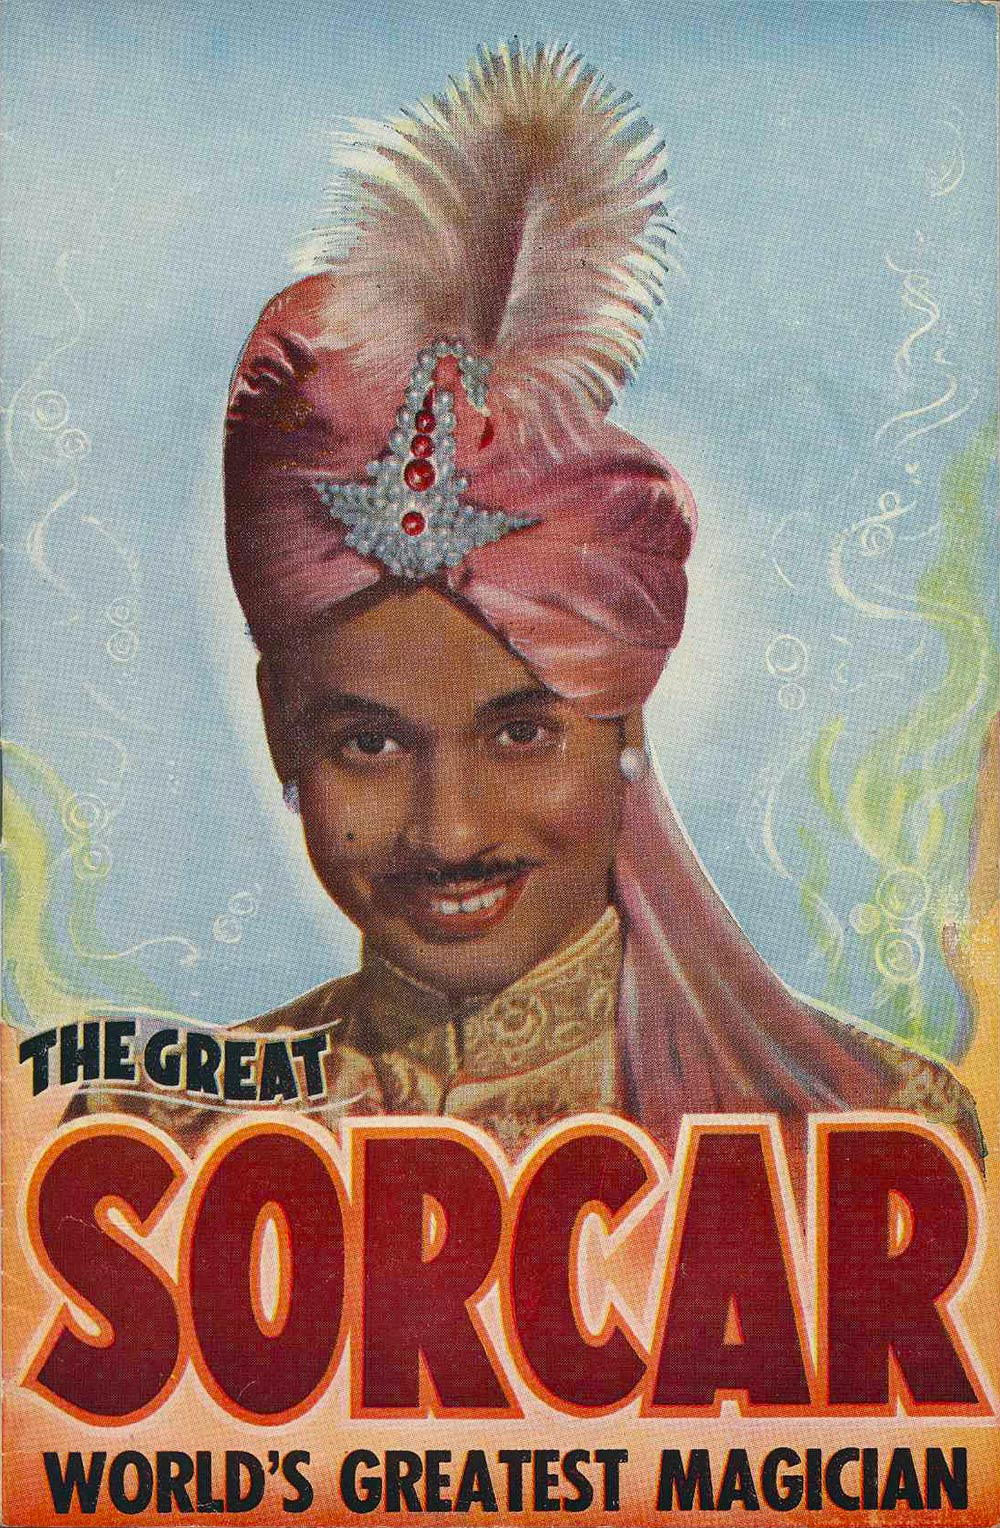 <em>The Great Sorcar: world's greatest magician</em>. (J.C. Williamson Theatres Ltd.). His Majesty's Theatre, Dunedin, 1957.